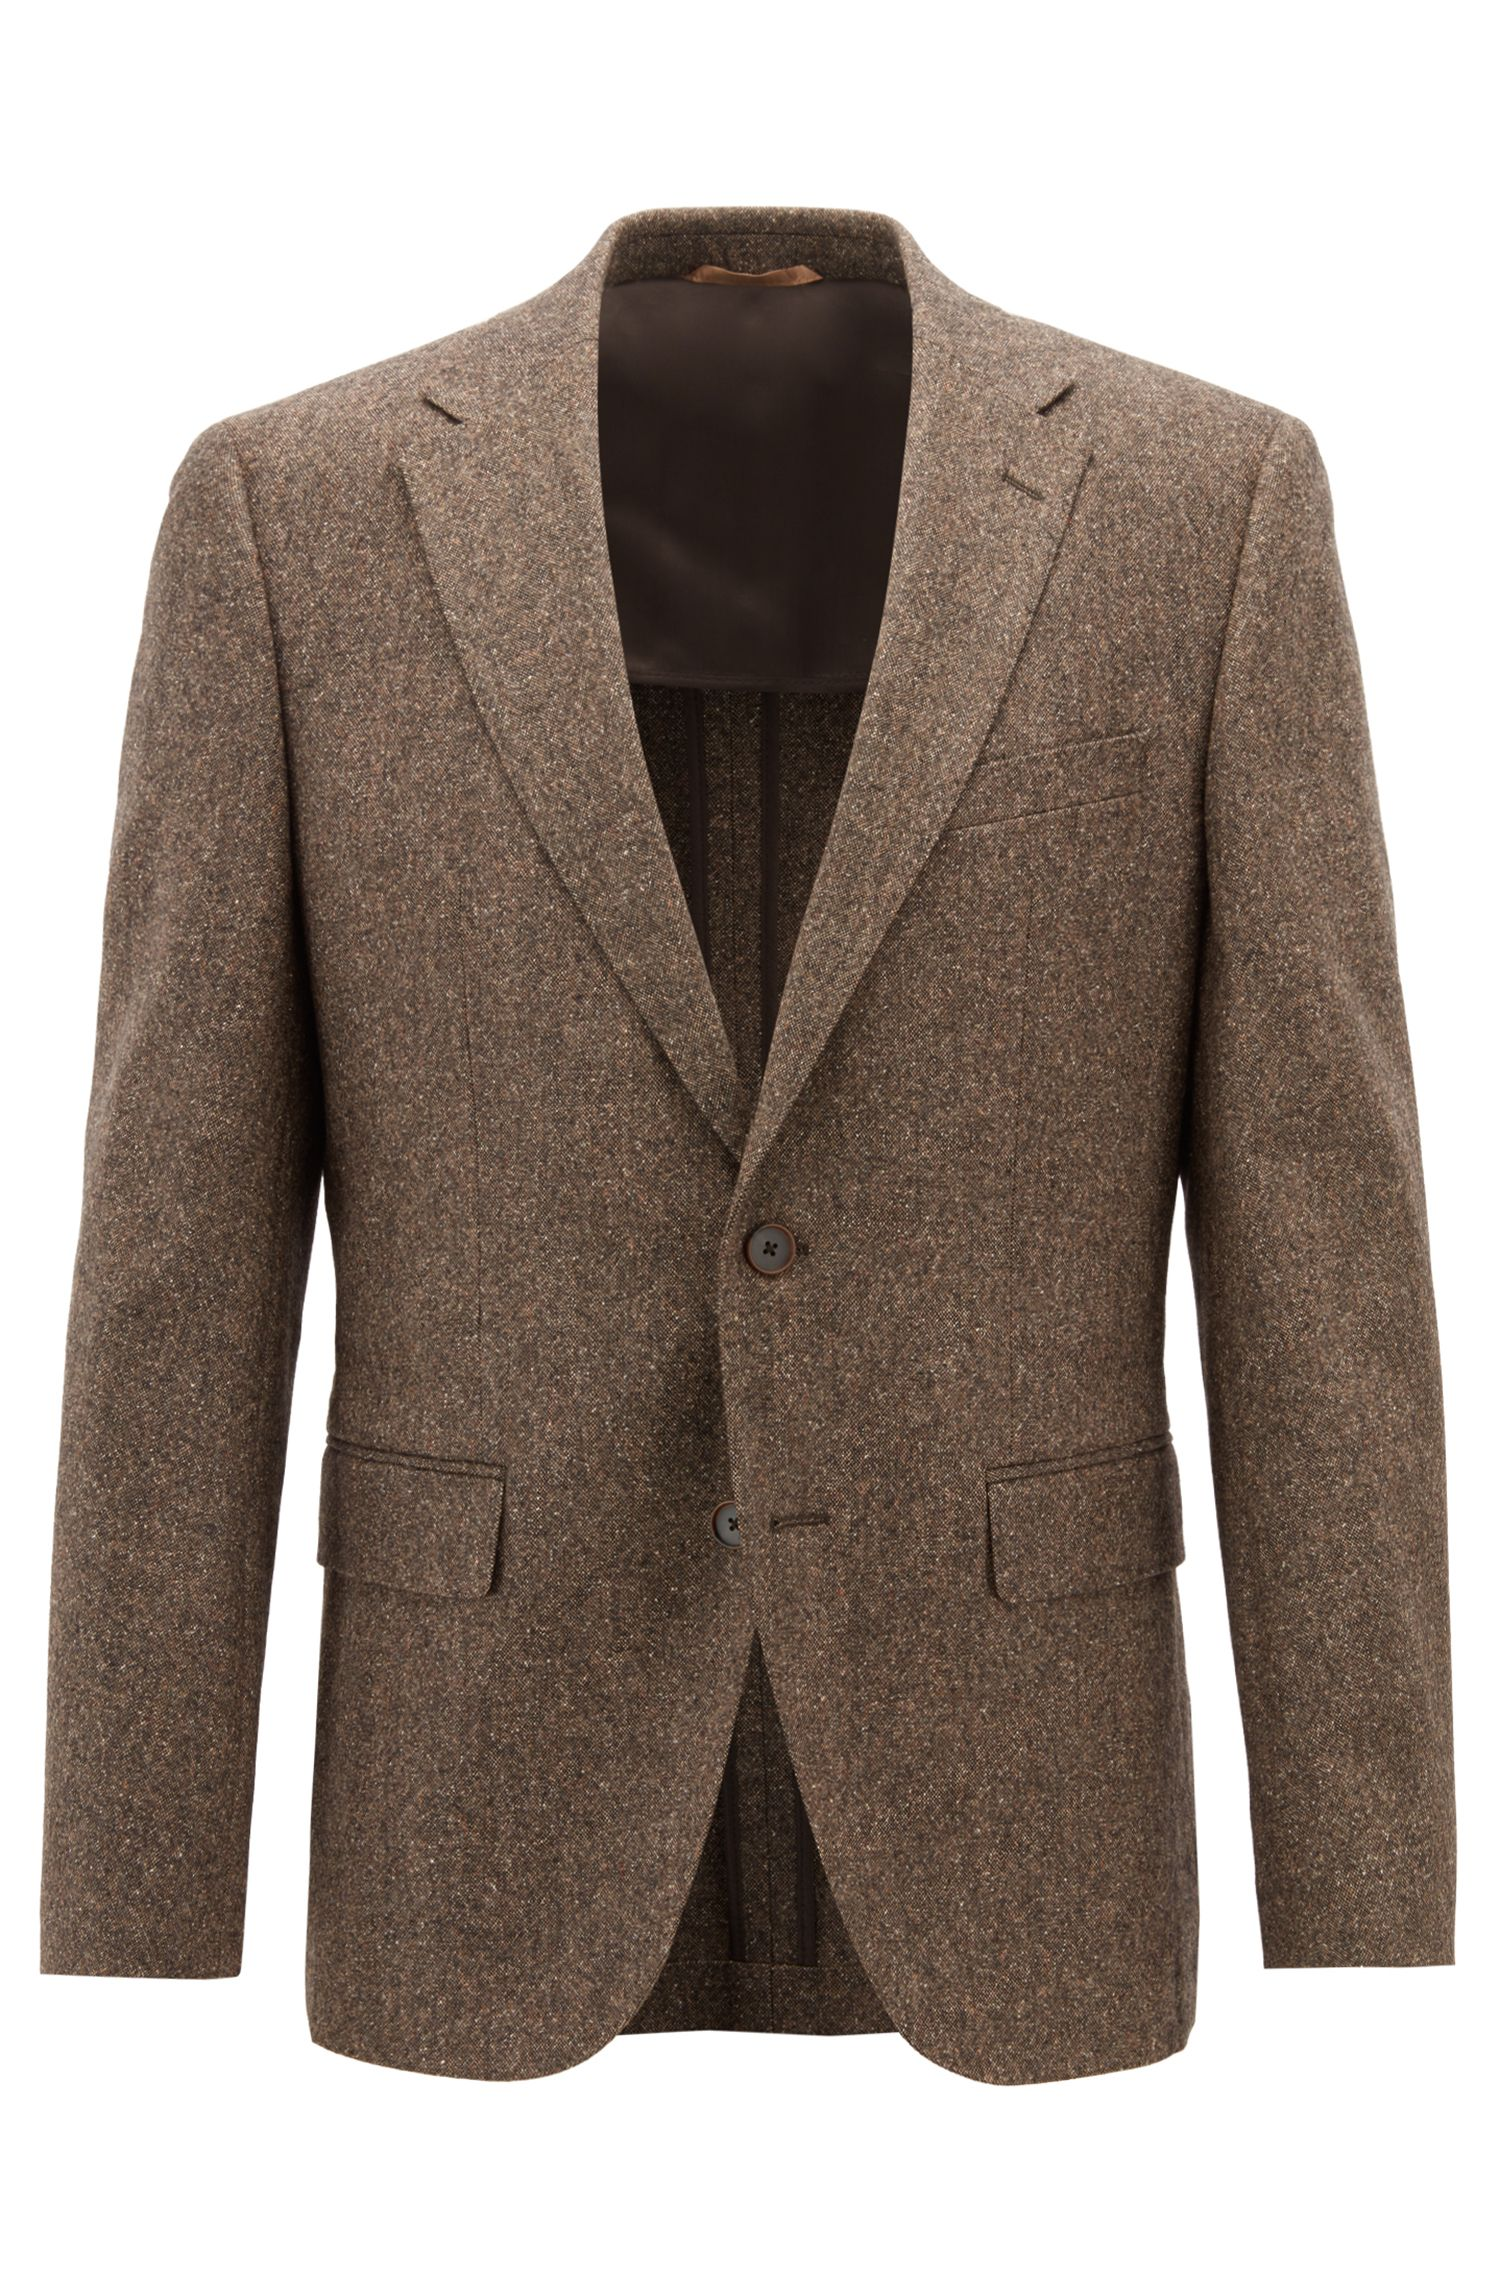 Blazer Regular Fit en tweed de laine vierge mélangée